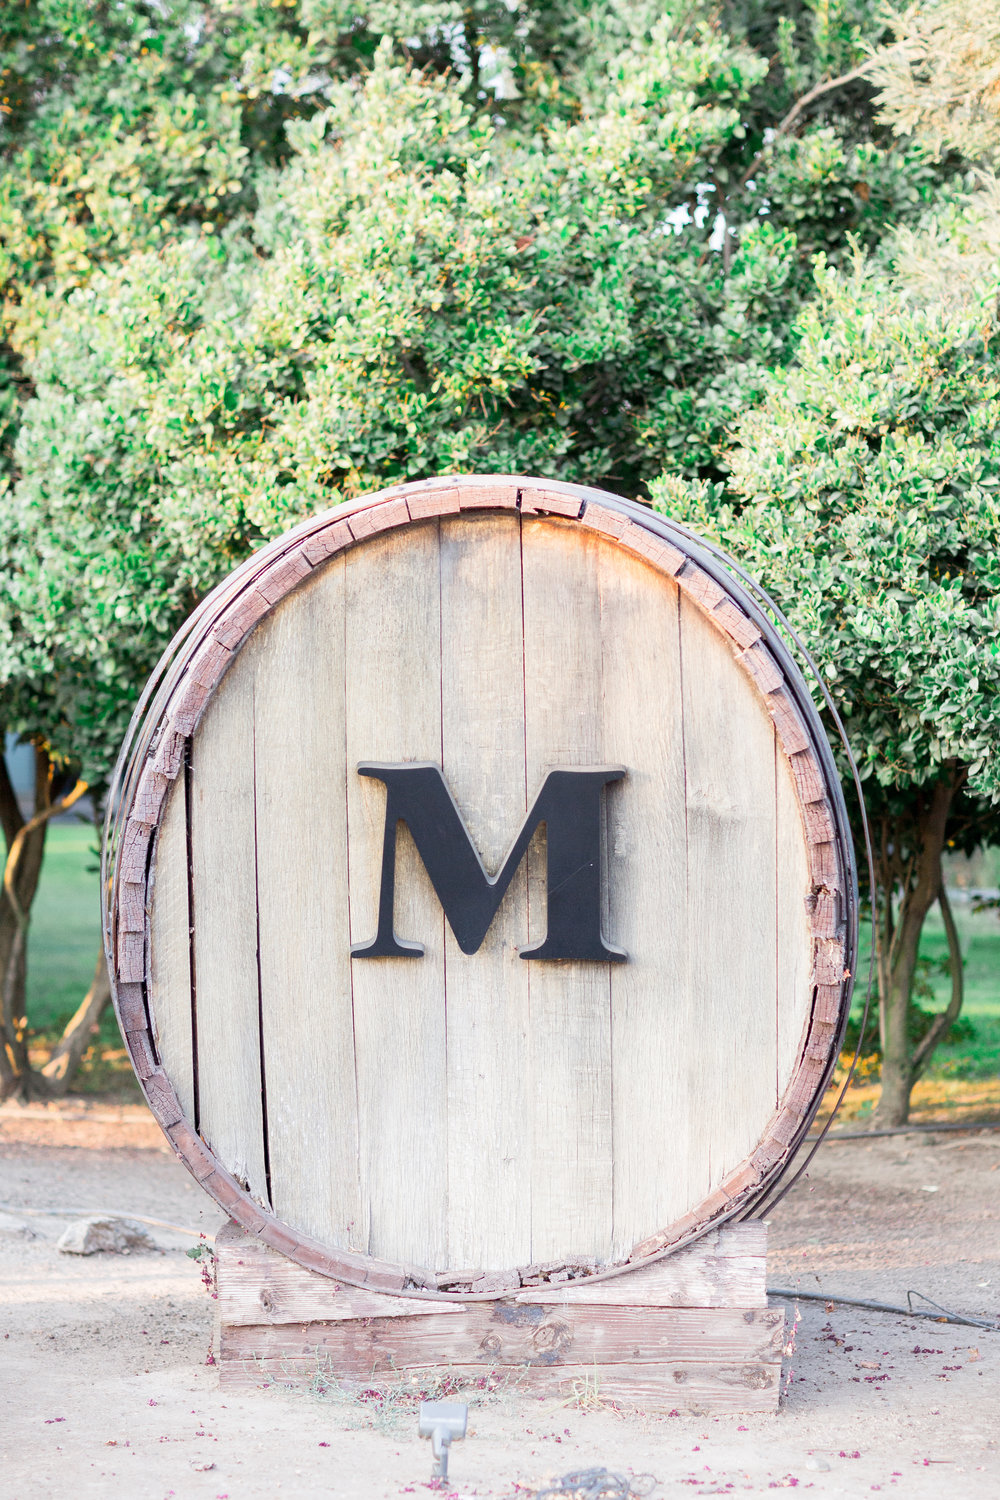 Mettler-Family-Vineyards-Wedding-Photos (213 of 274).jpg